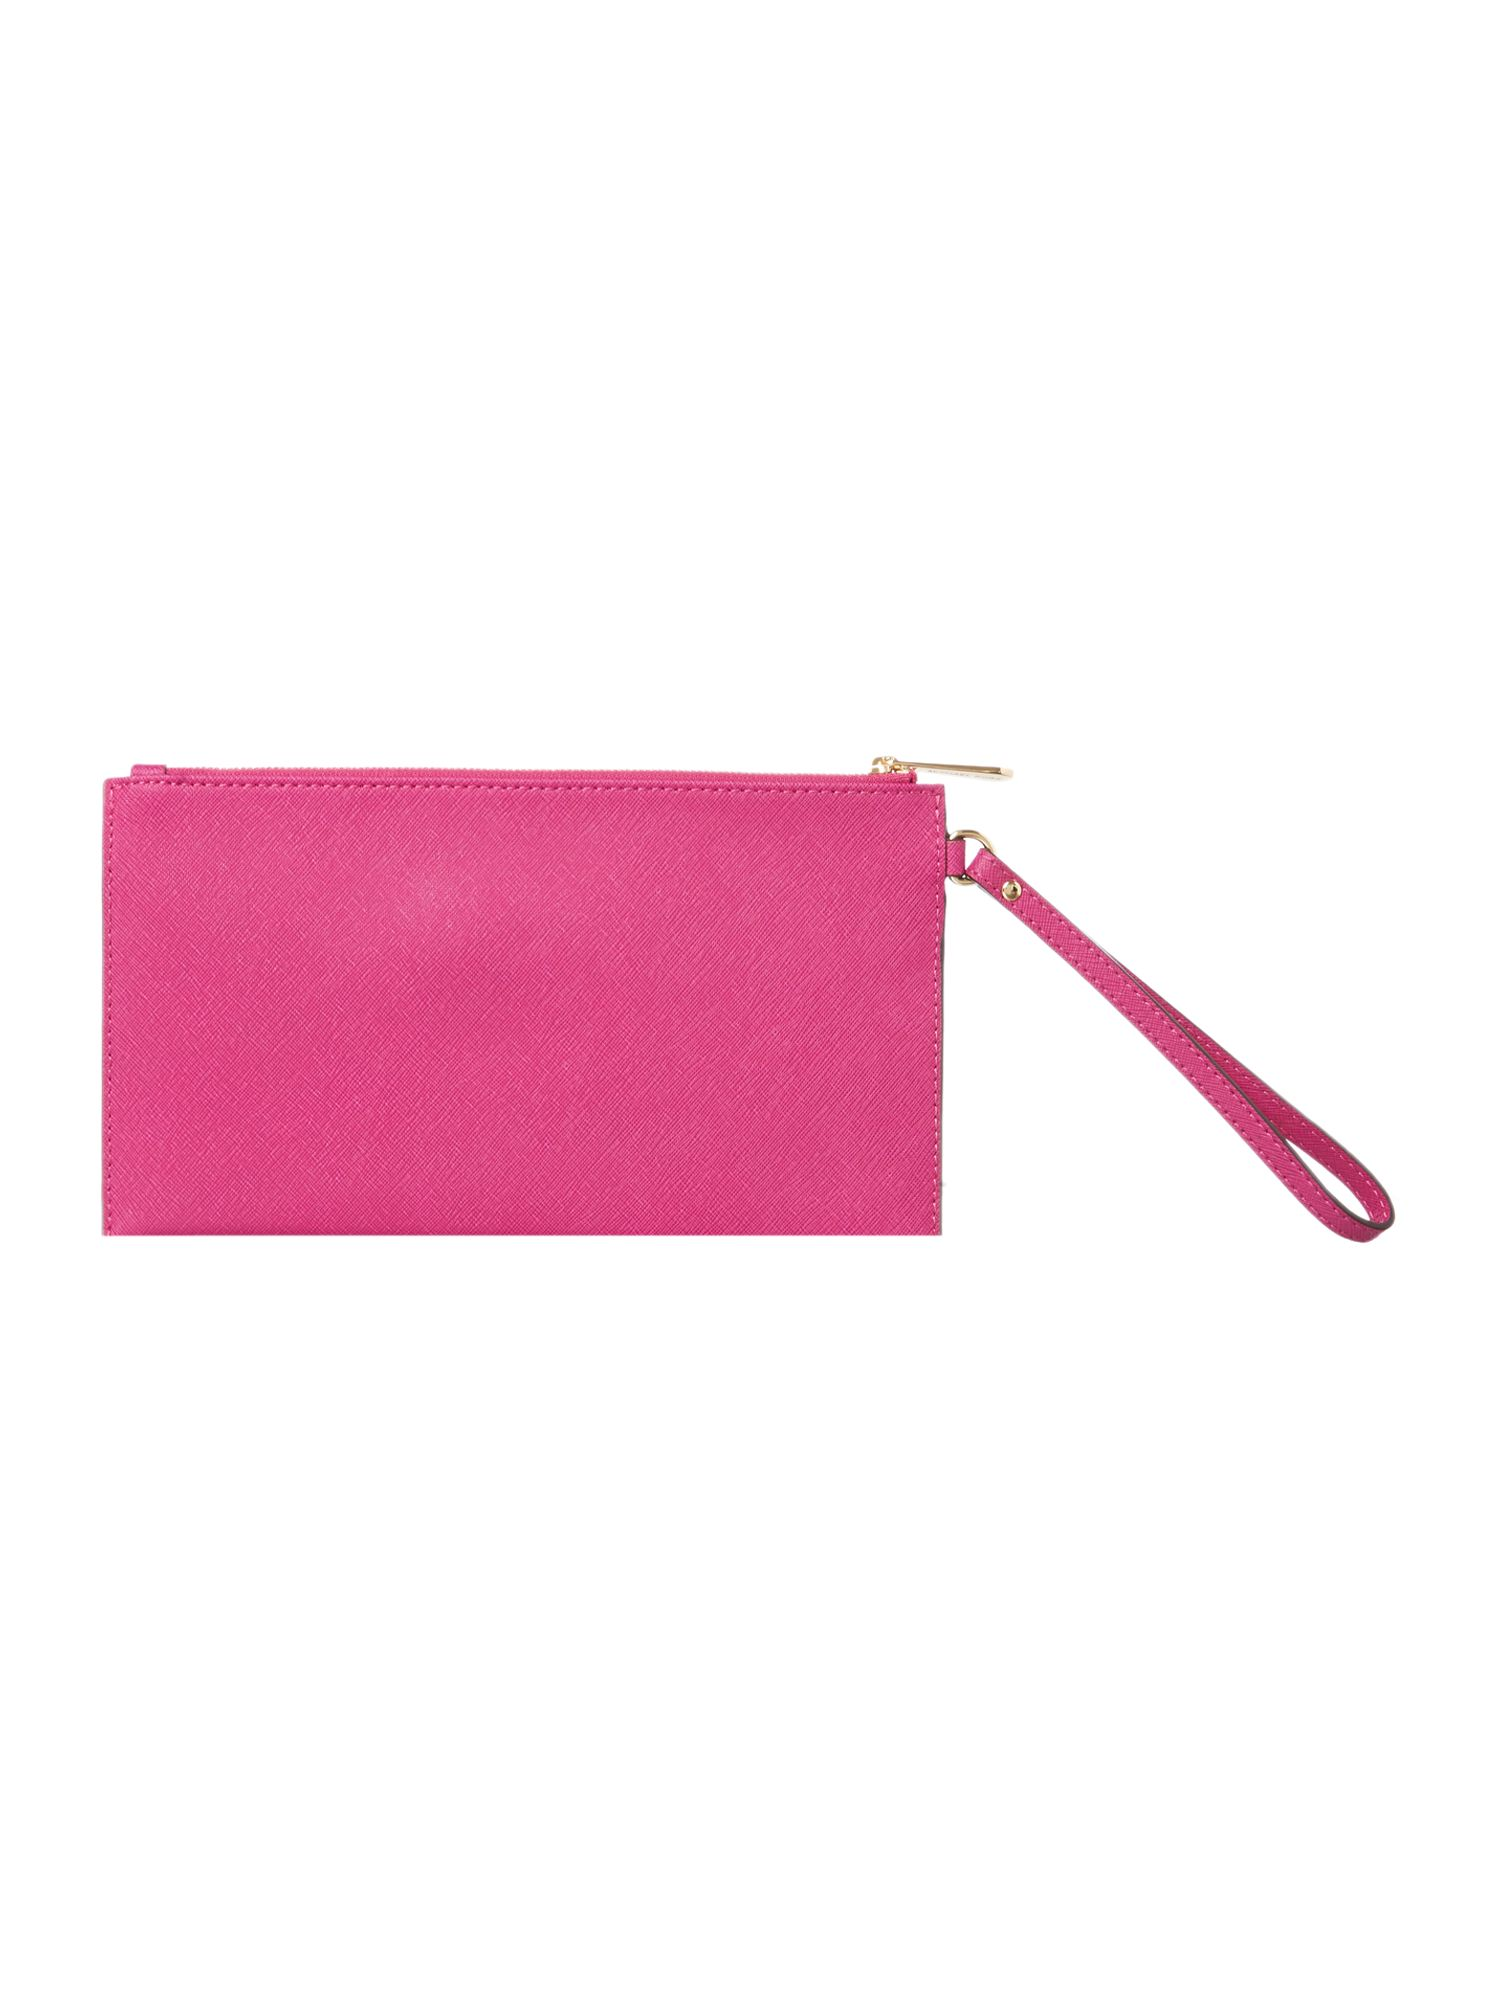 Pink large zip clutch bag